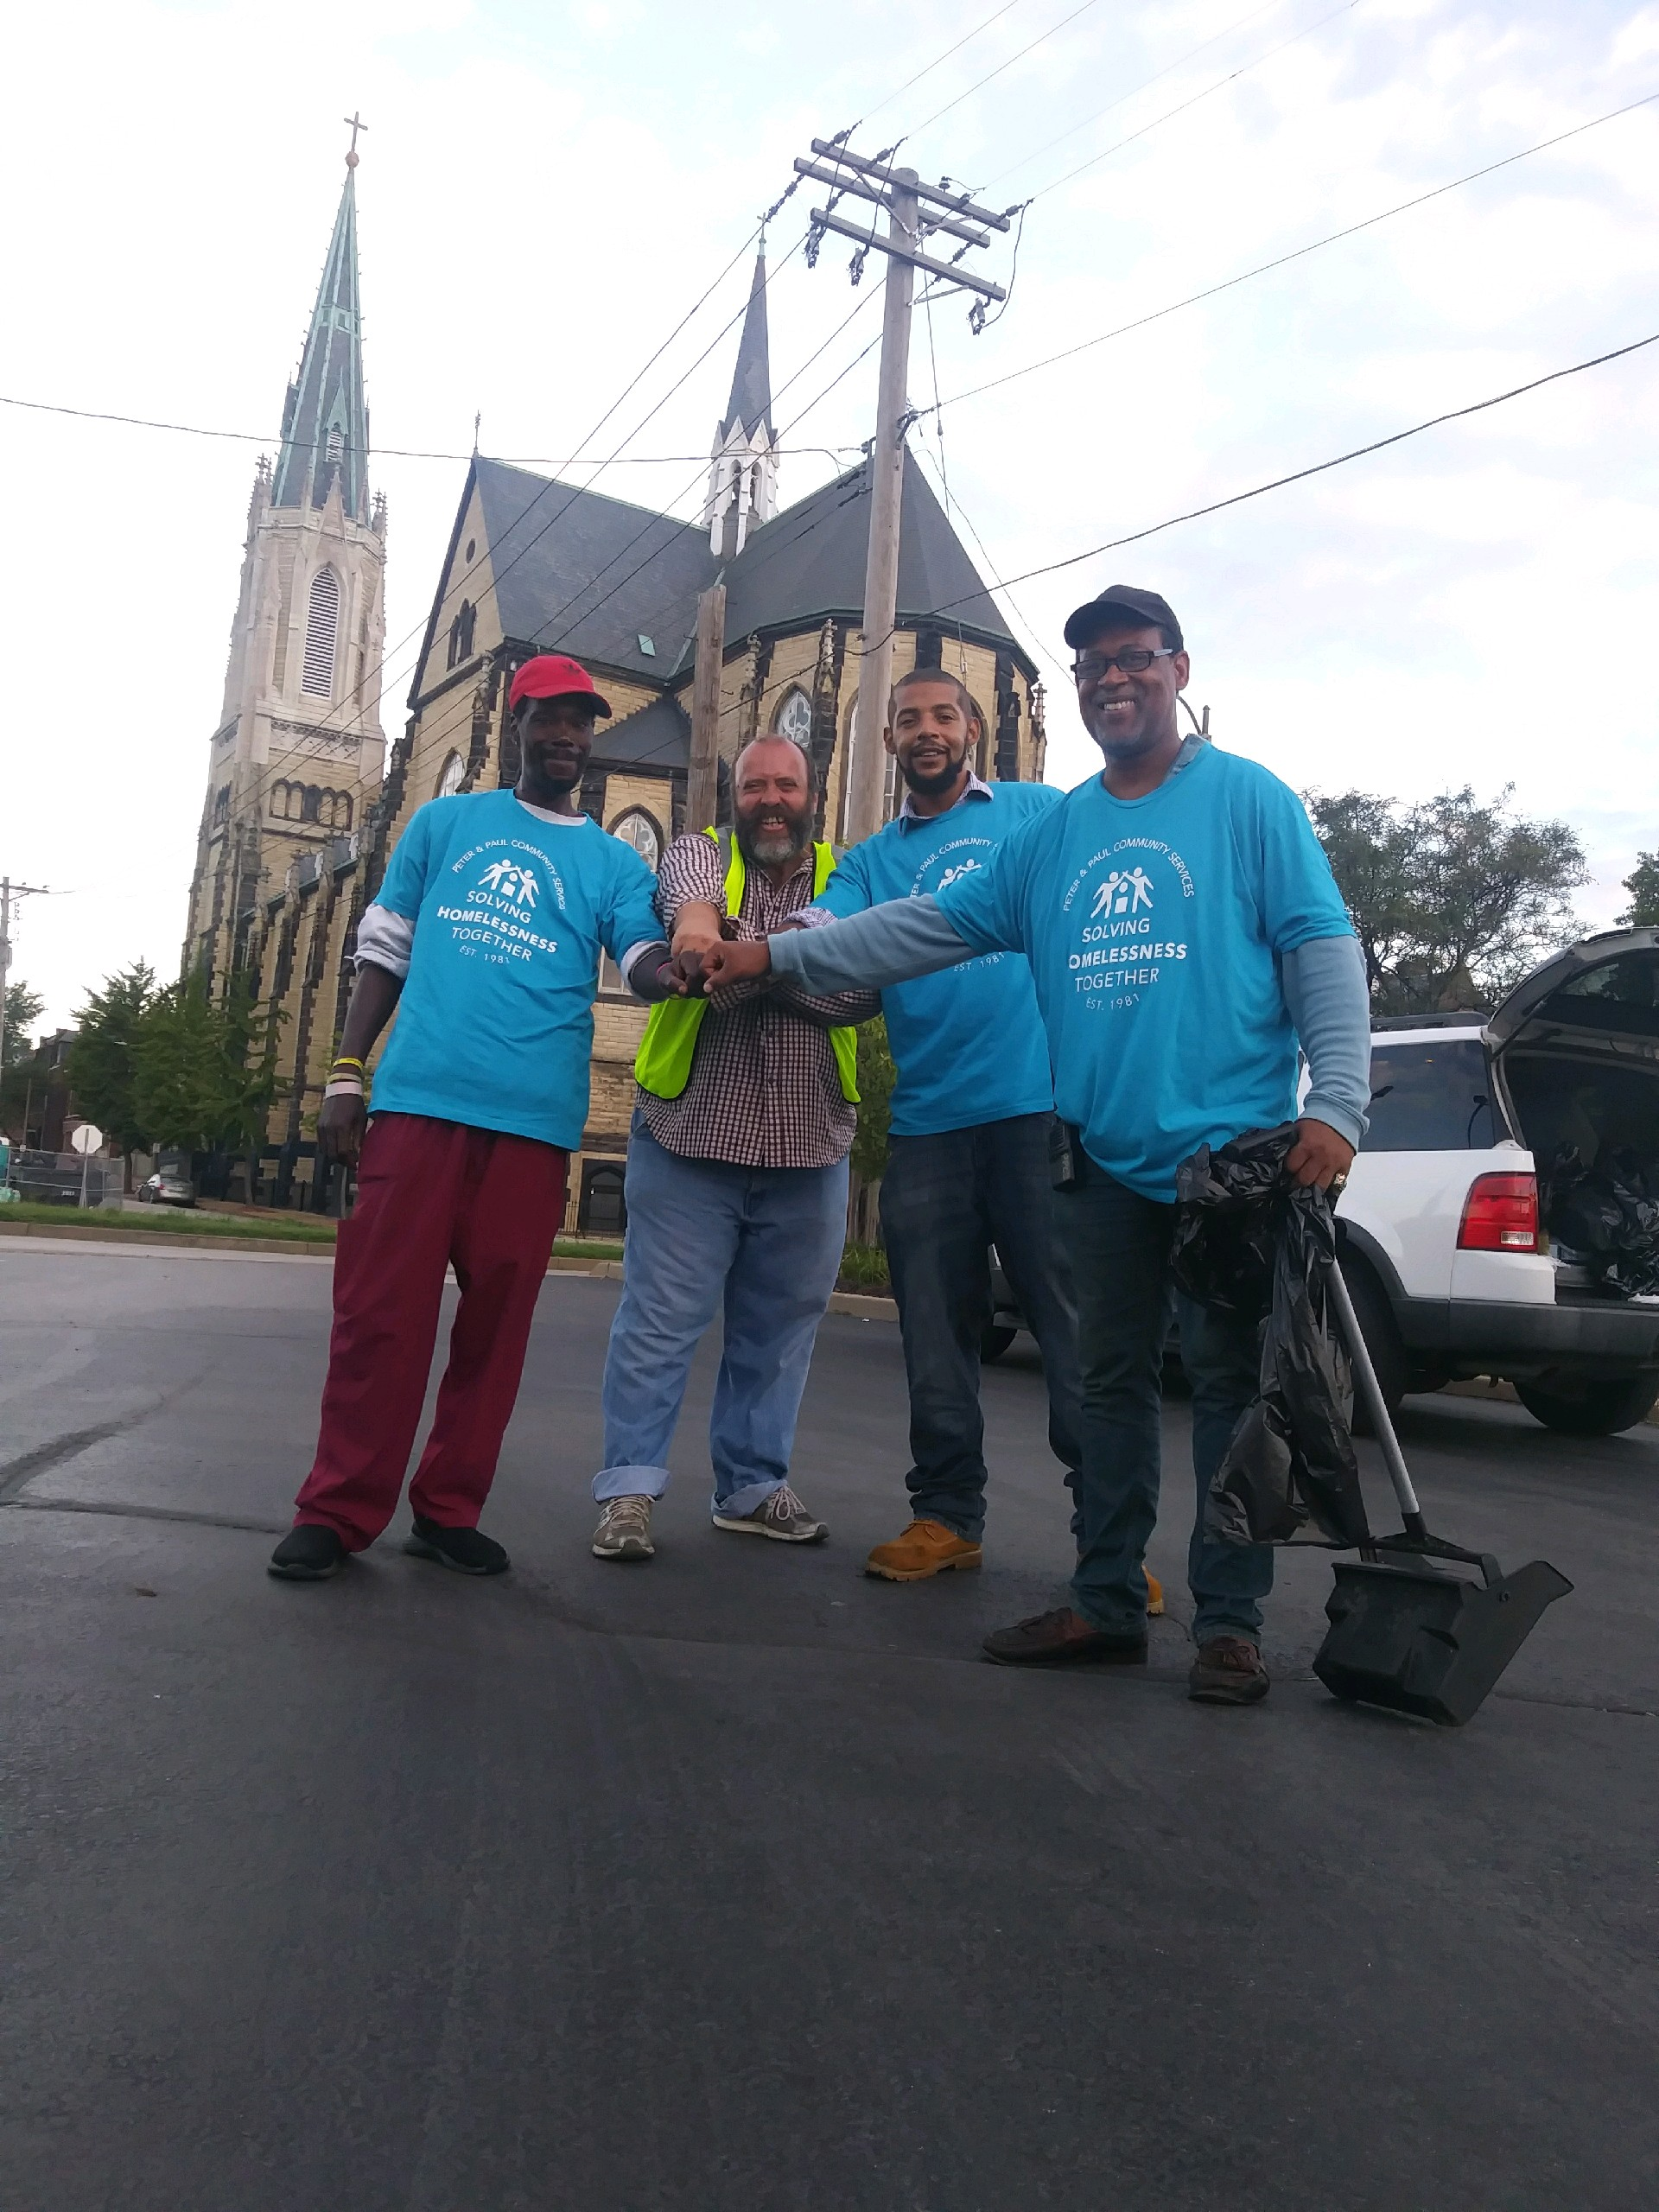 Members of the Soulard Clean Team pose in front of Sts Peter and Paul Catholic Church